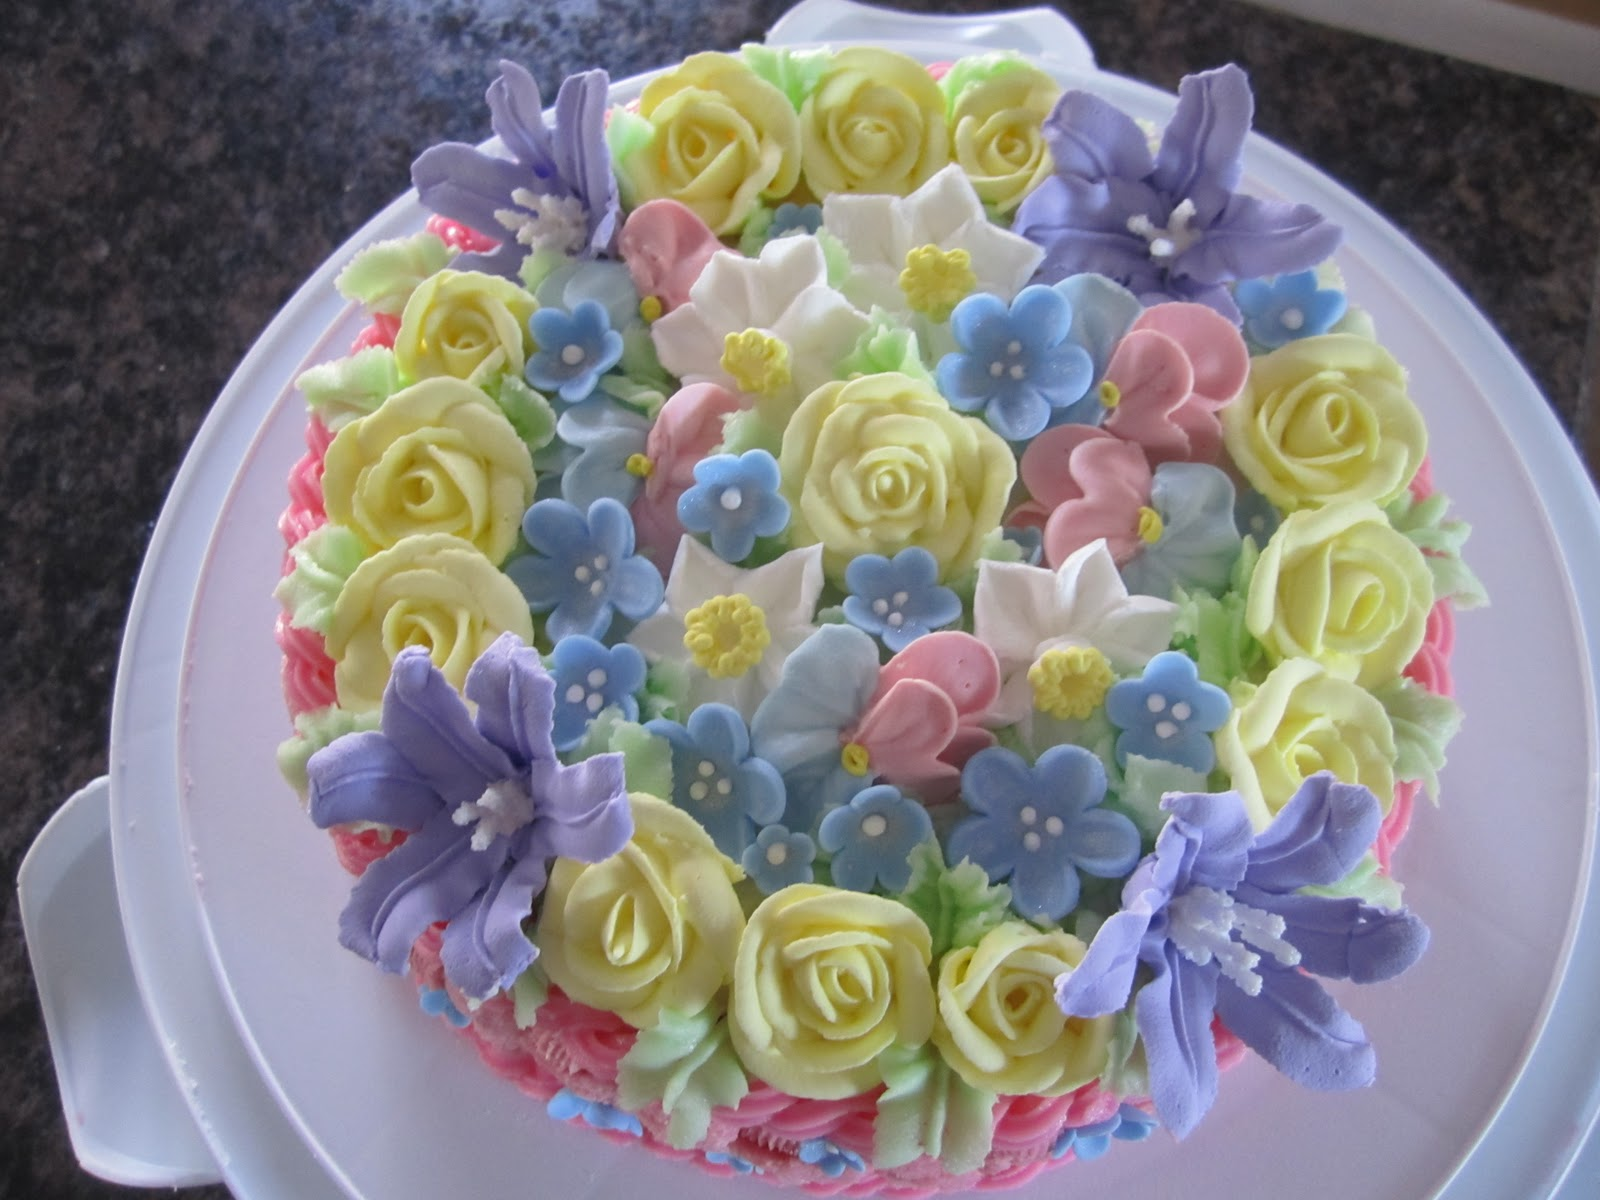 How To Make A Basket Of Flowers Cake : My cake flower basket